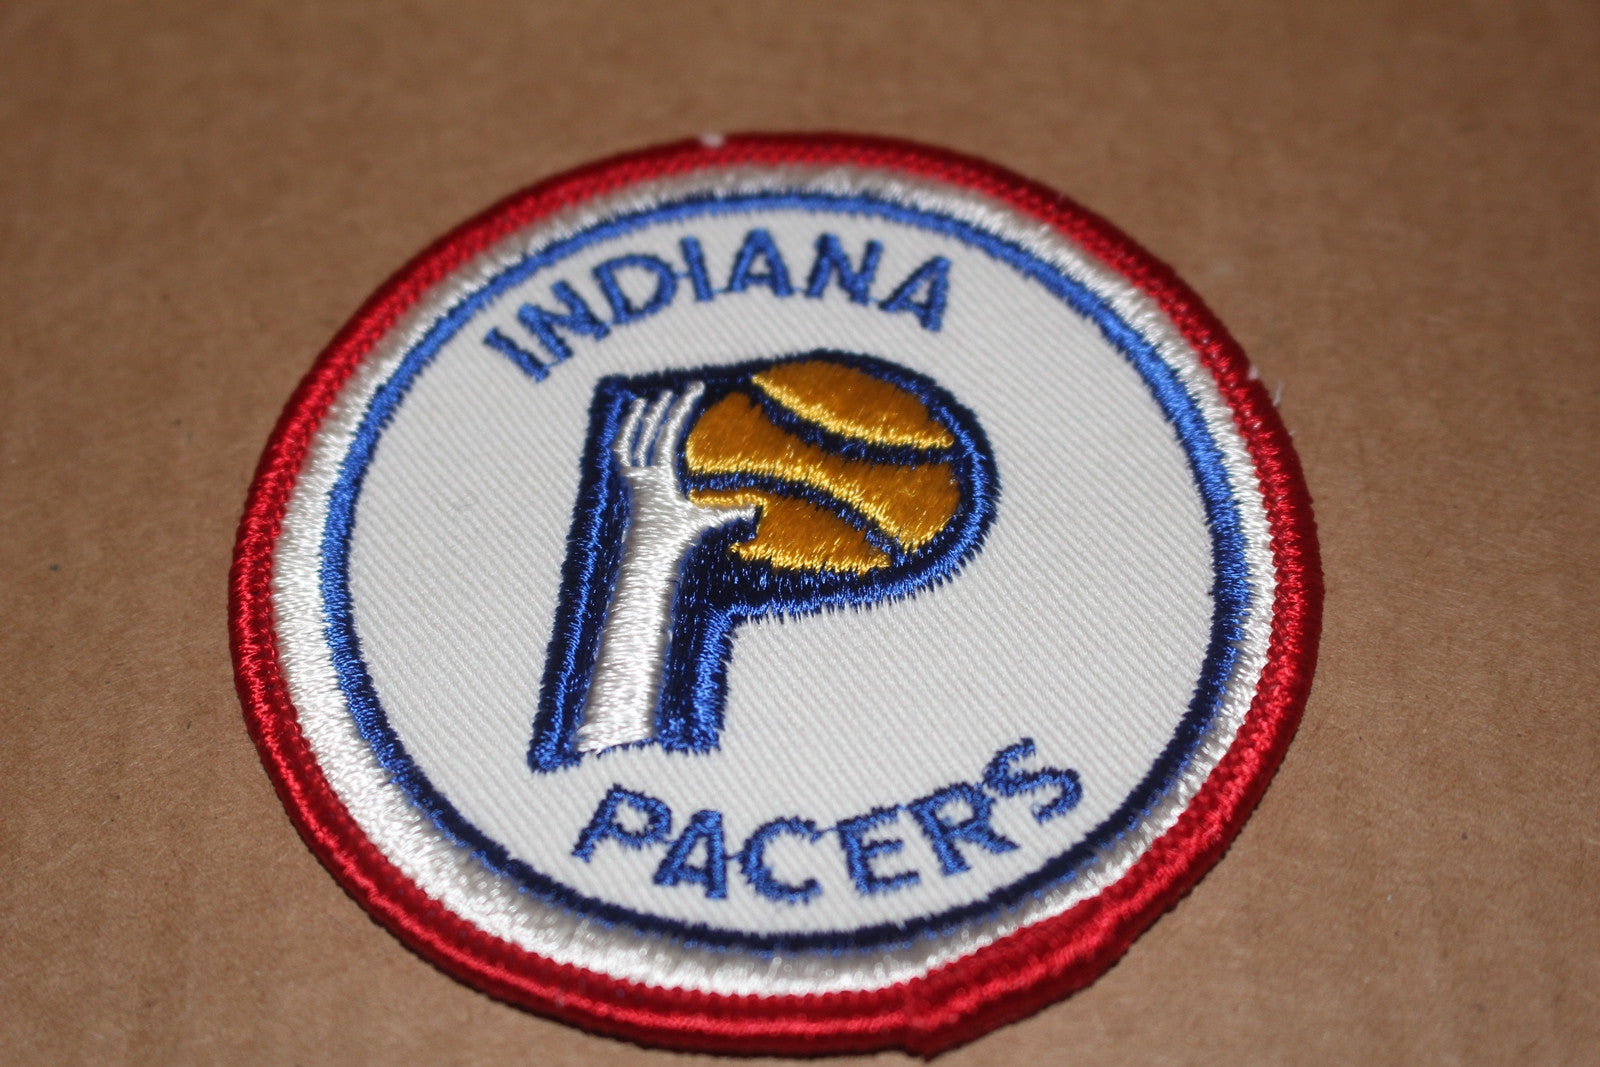 Vintage Indiana Pacers ABA Basketball Patch - Vintage Indy Sports